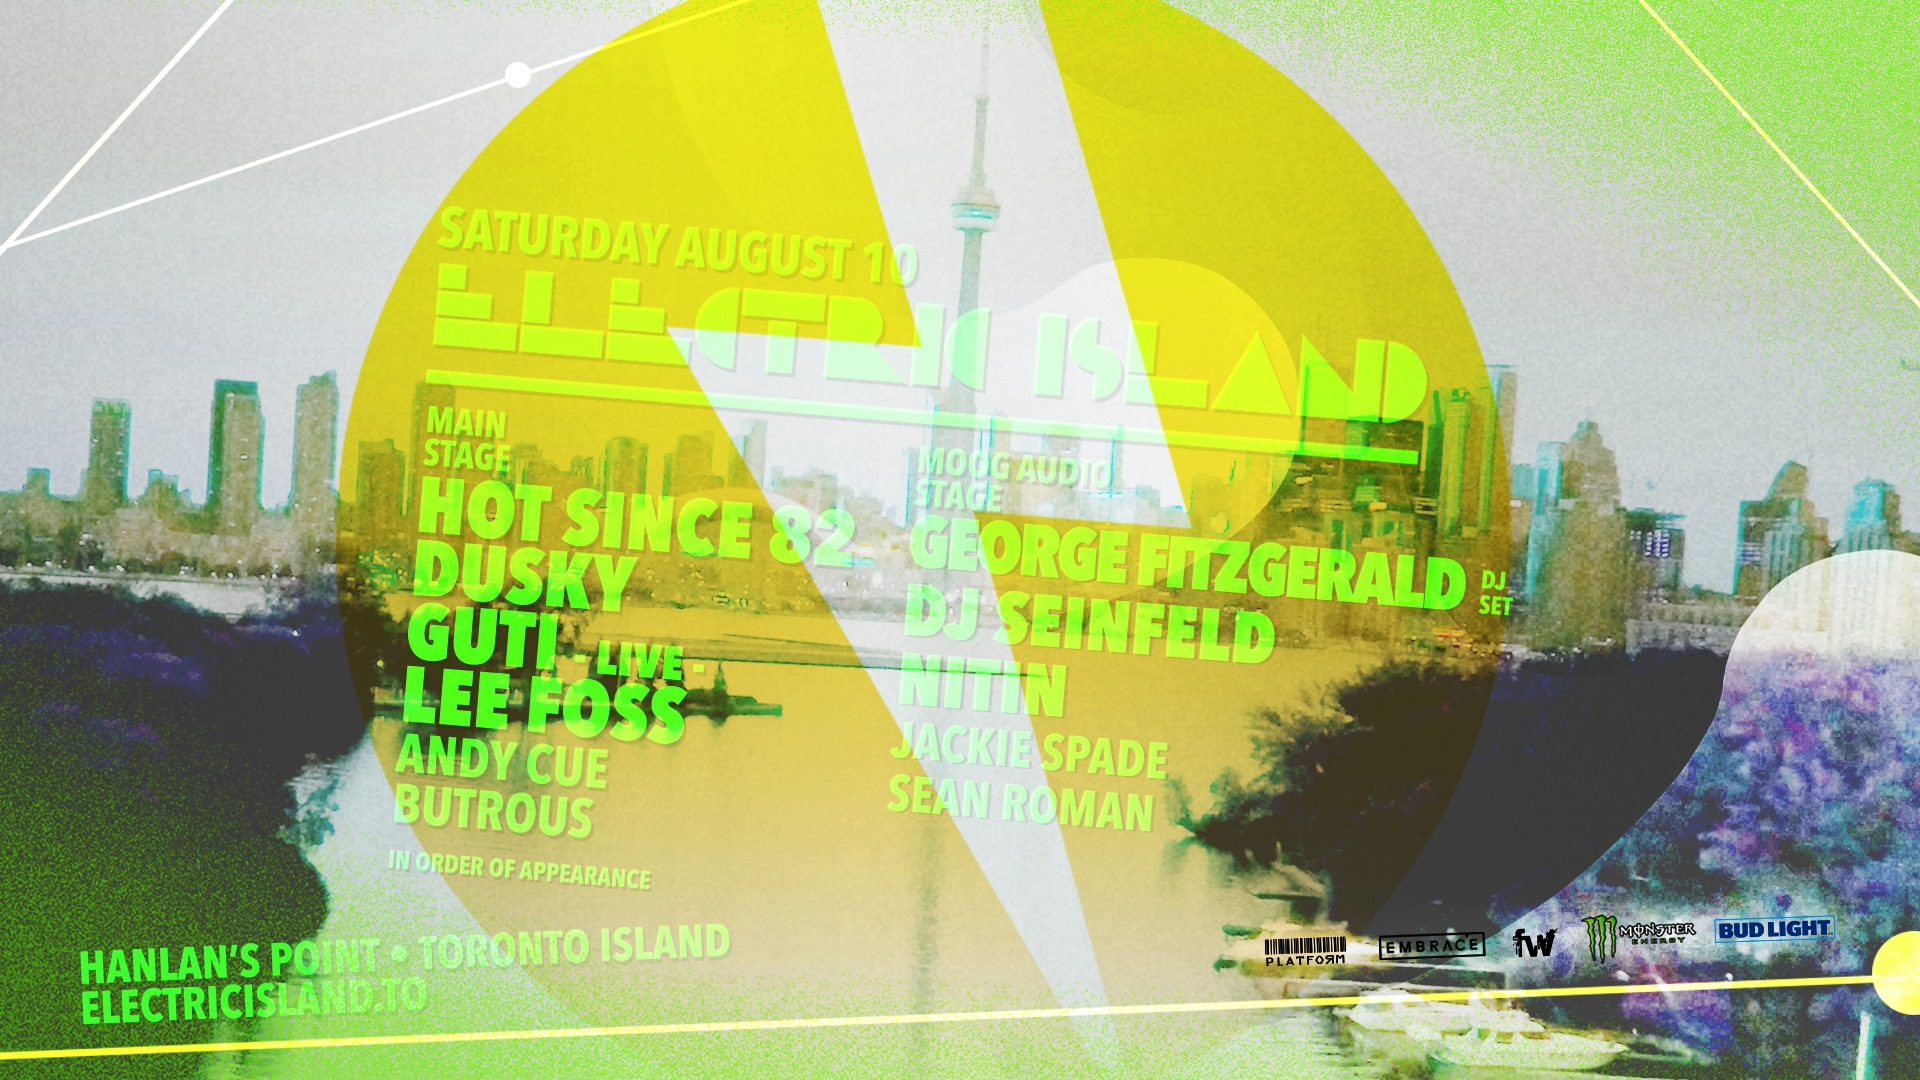 Electric-Island-Saturday-August-10th-2019